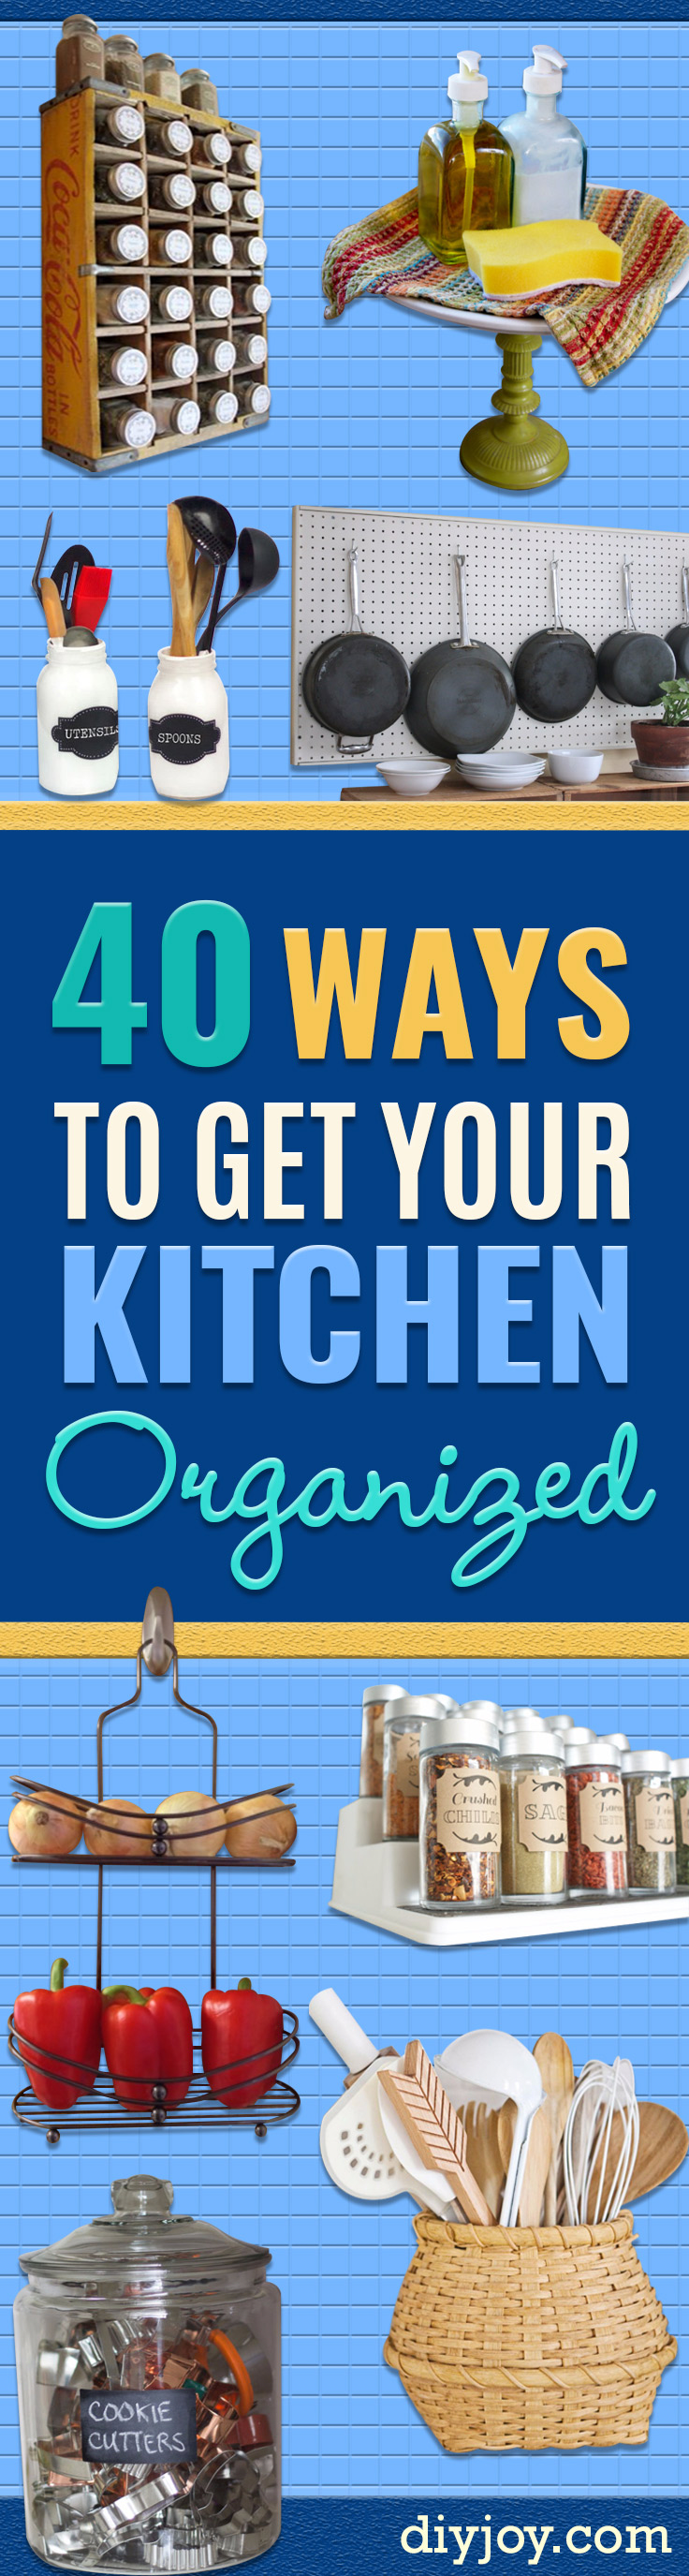 DIY Organizing Ideas for Kitchen - Cheap and Easy Ways to Get Your Kitchen Organized - Dollar Tree Crafts, Space Saving Ideas - Pantry, Spice Rack, Drawers and Shelving - Home Decor Projects for Men and Women #diykitchen #organizing #diyideas #diy